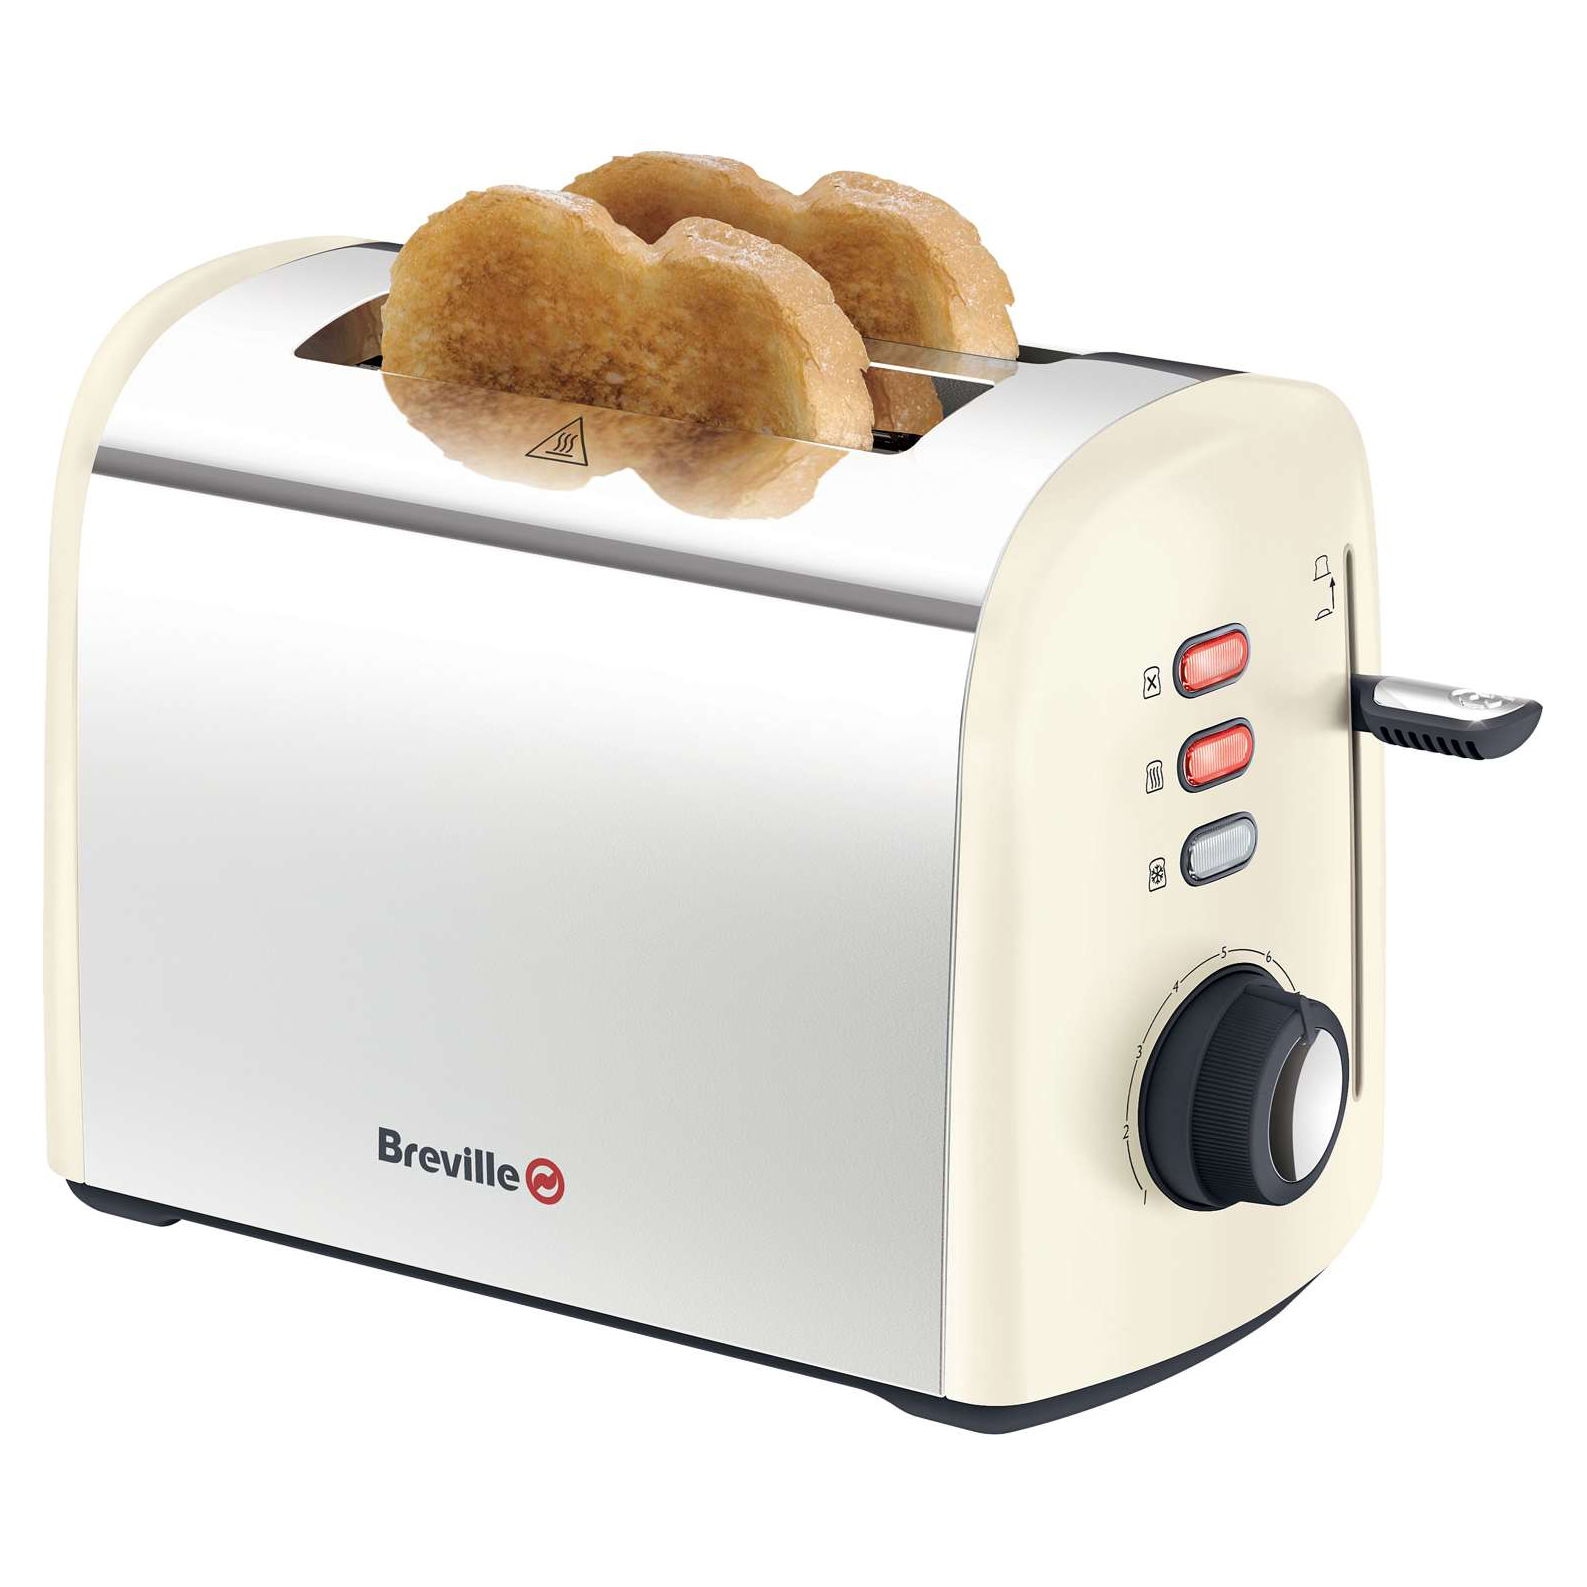 Breville Cream Stainless Steel 2 Slice - Cream No Colour